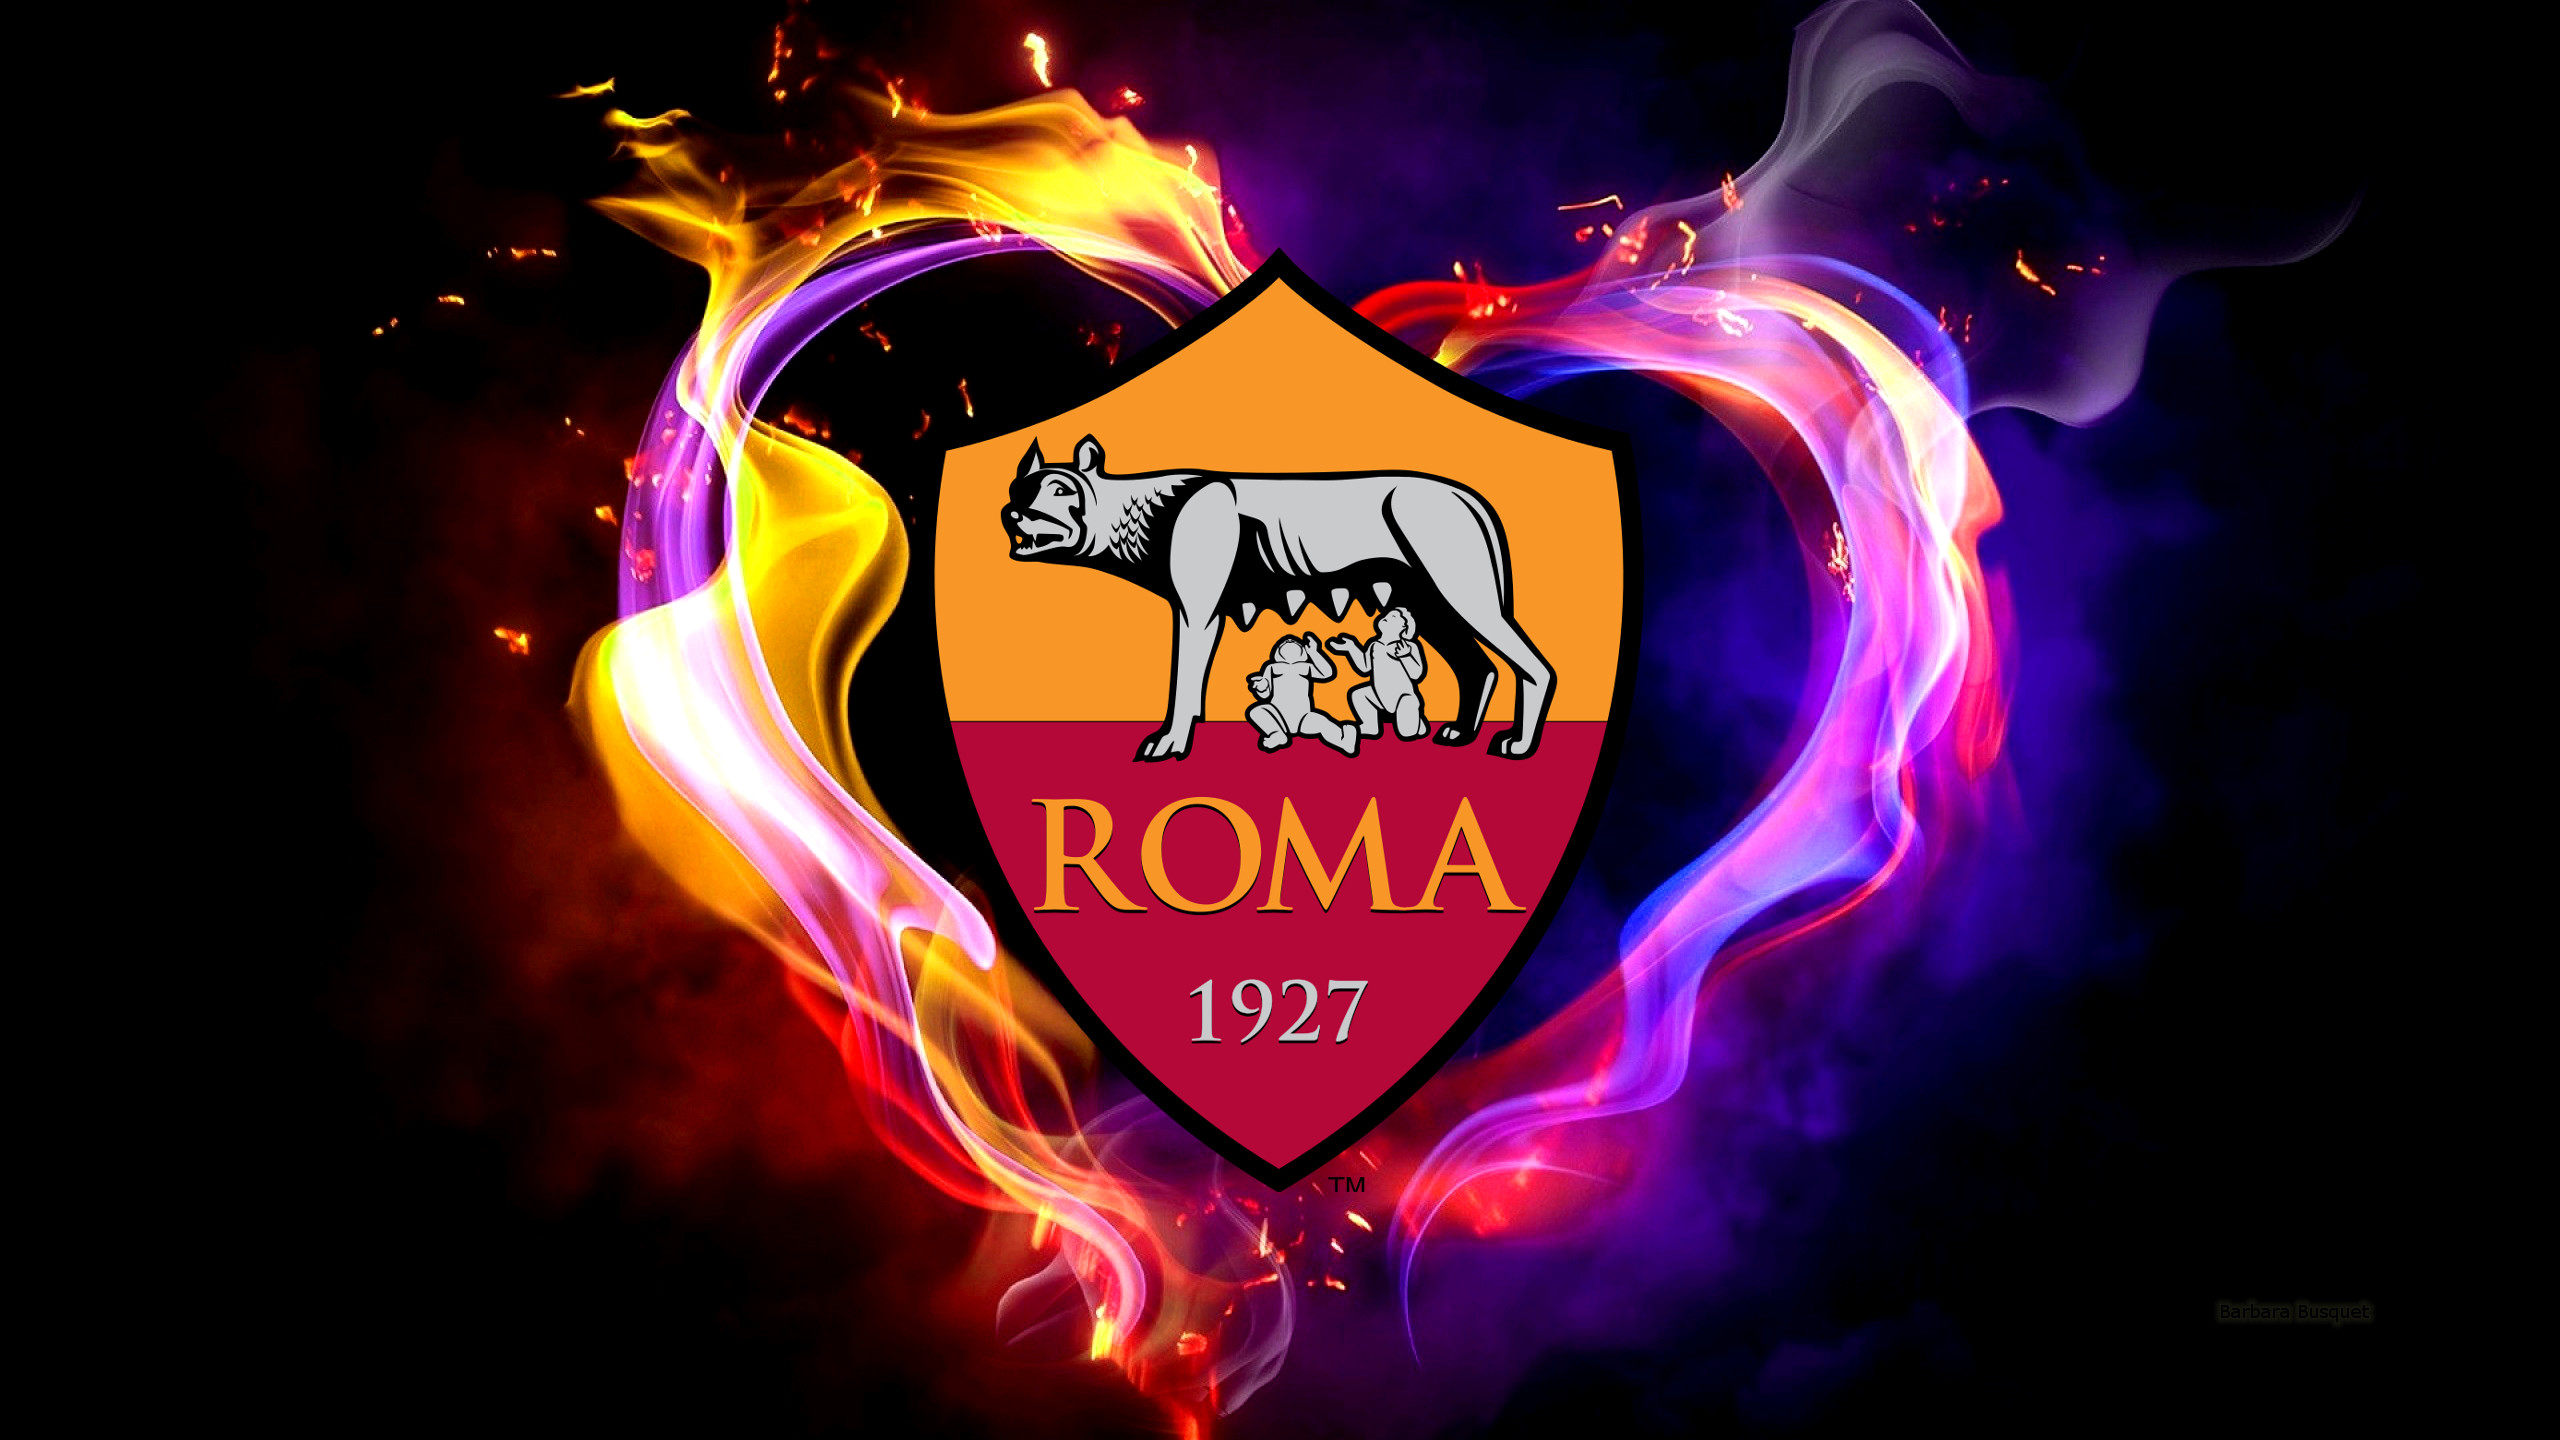 Fall Tablet Wallpaper A S Roma Football Wallpapers Barbaras Hd Wallpapers